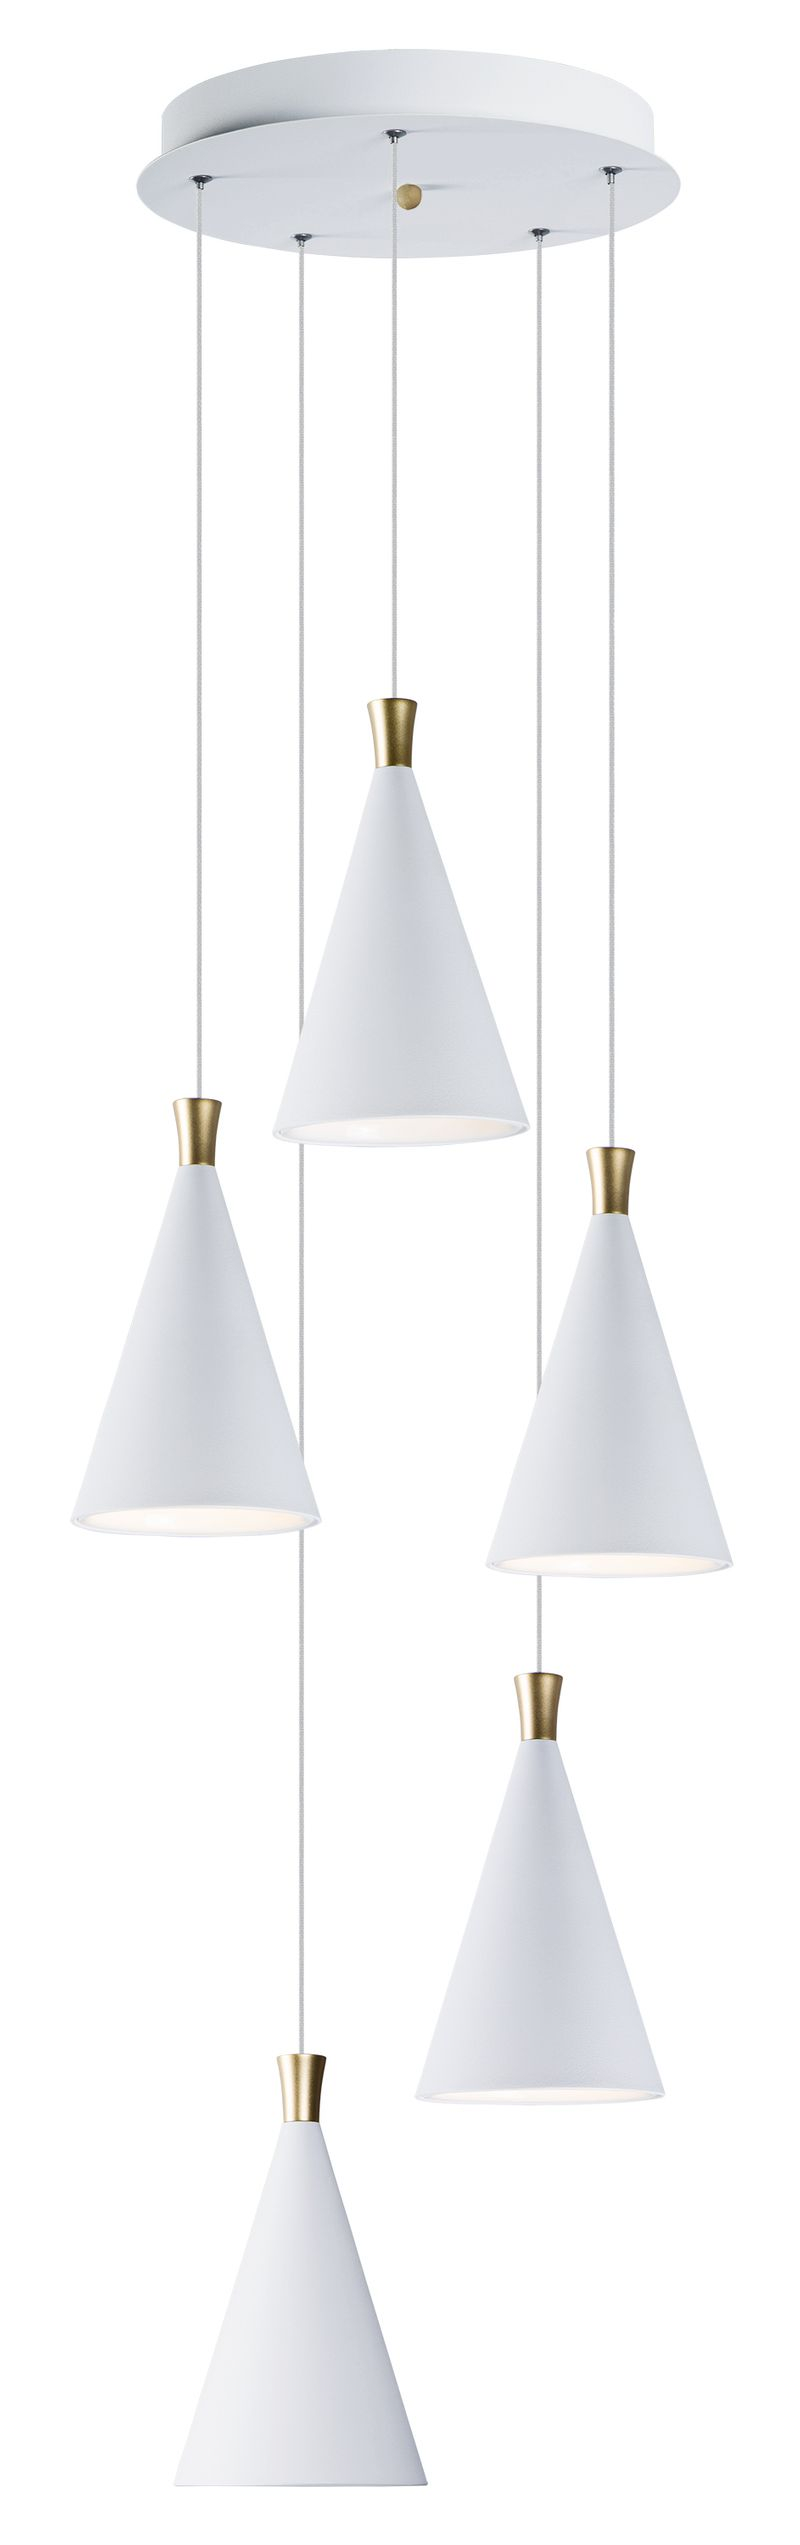 "Norsk 15.25"" 5-Light Multi-Light Pendant - White / Metallic Gold"